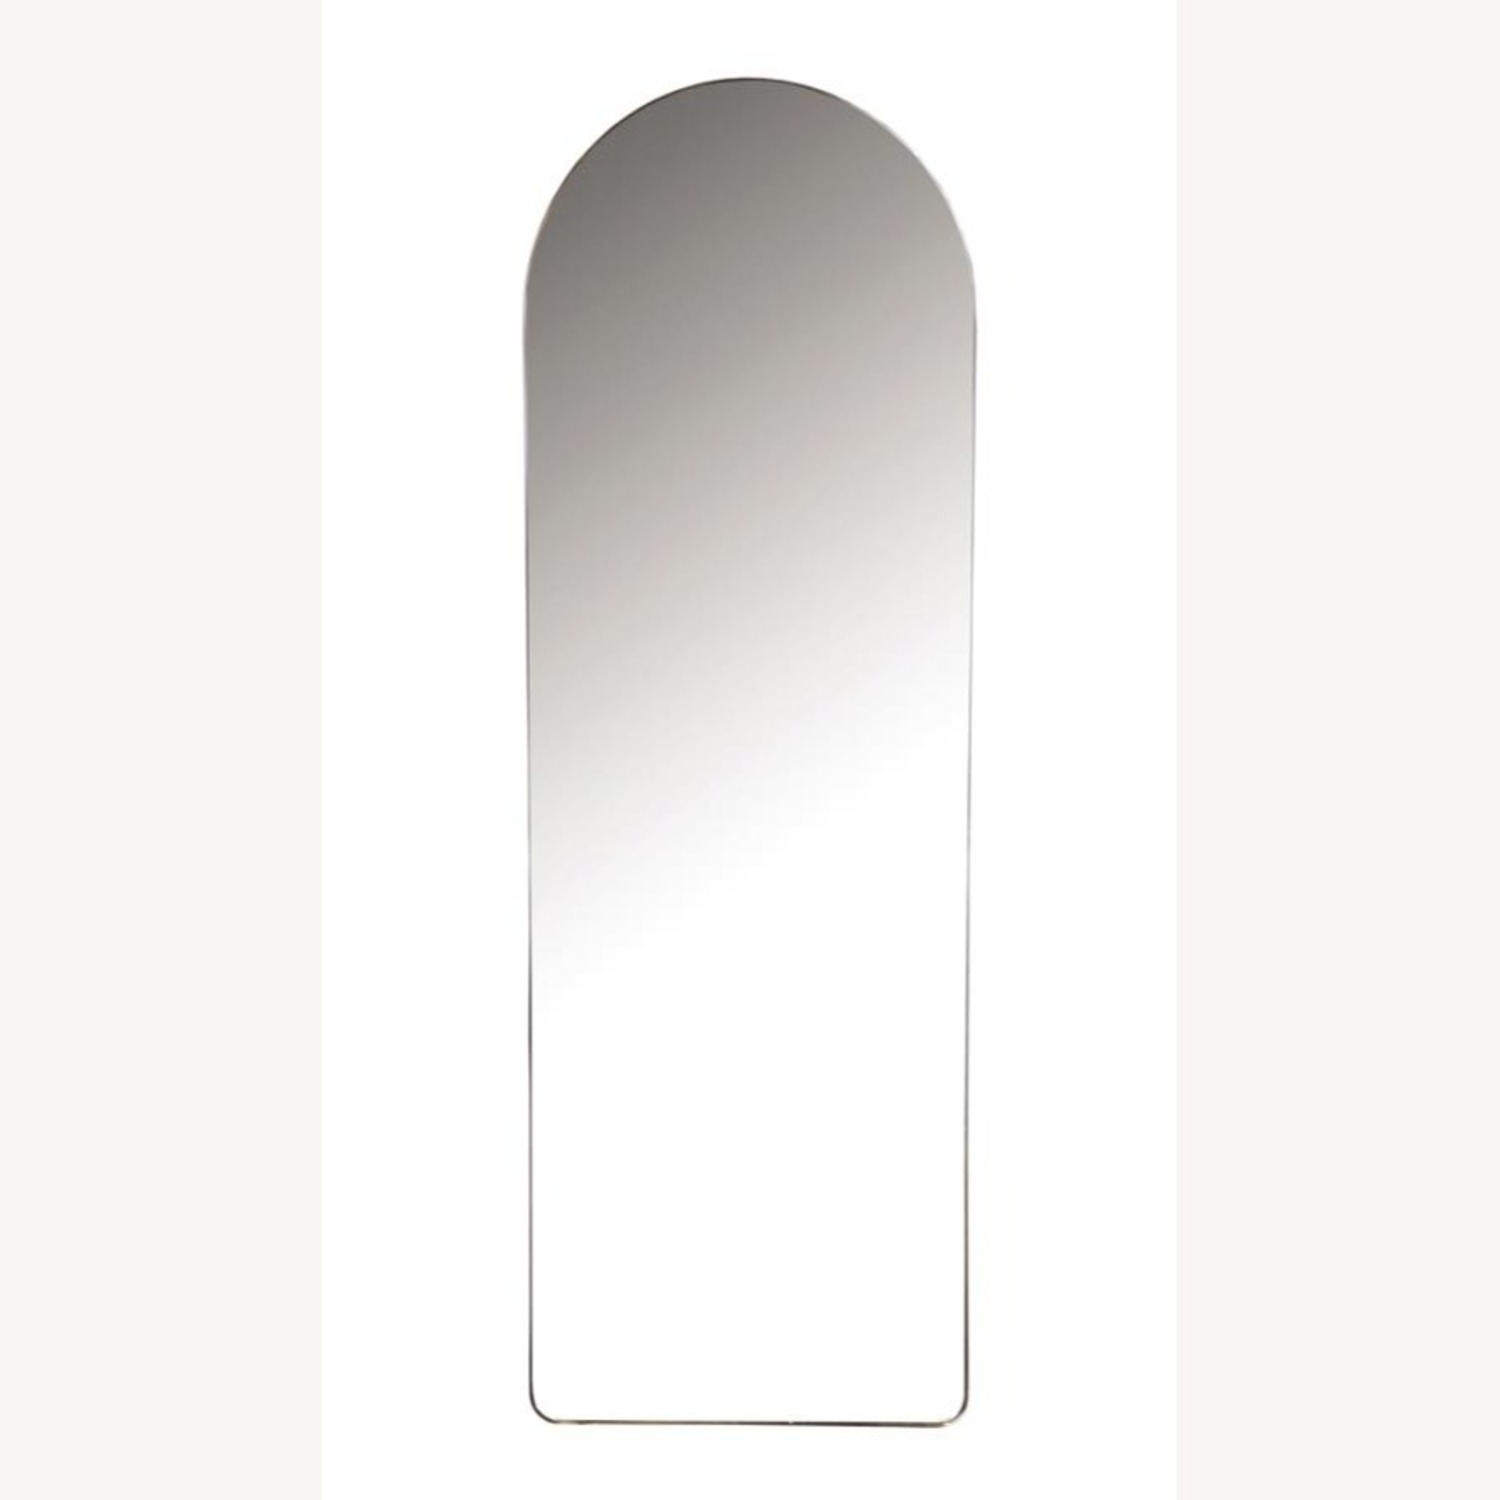 Wall Mirror In Black Metal Frame Finish - image-1